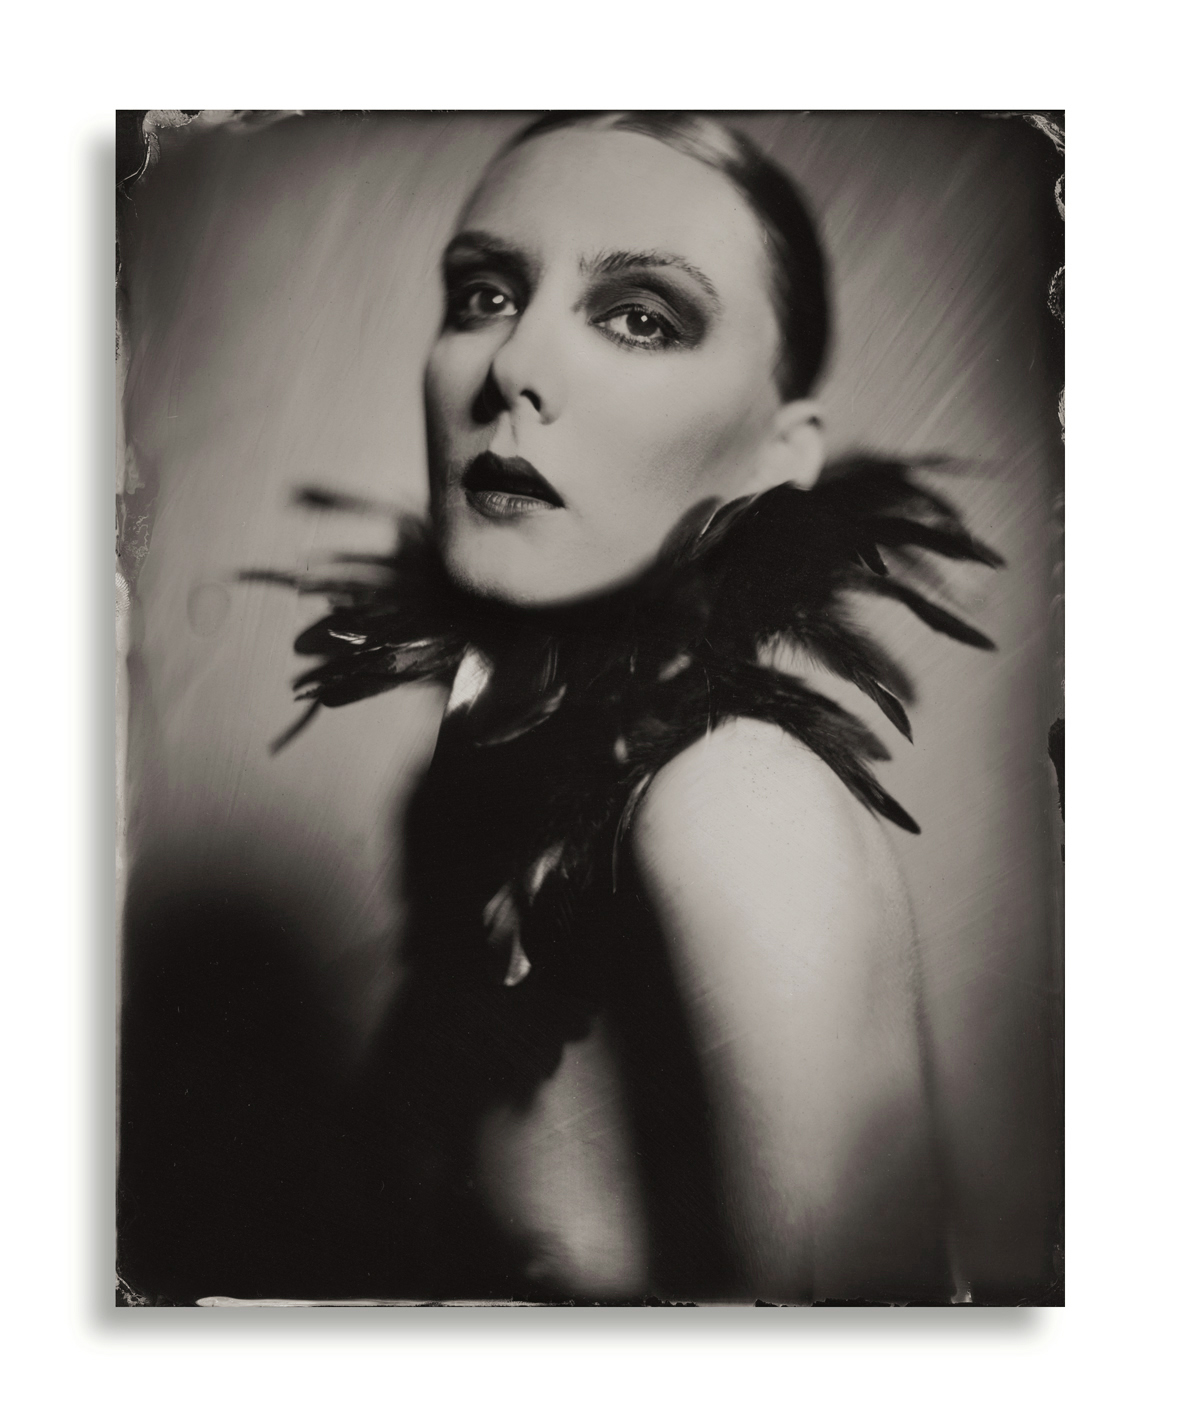 Dave King – Brooke / Collodion photo